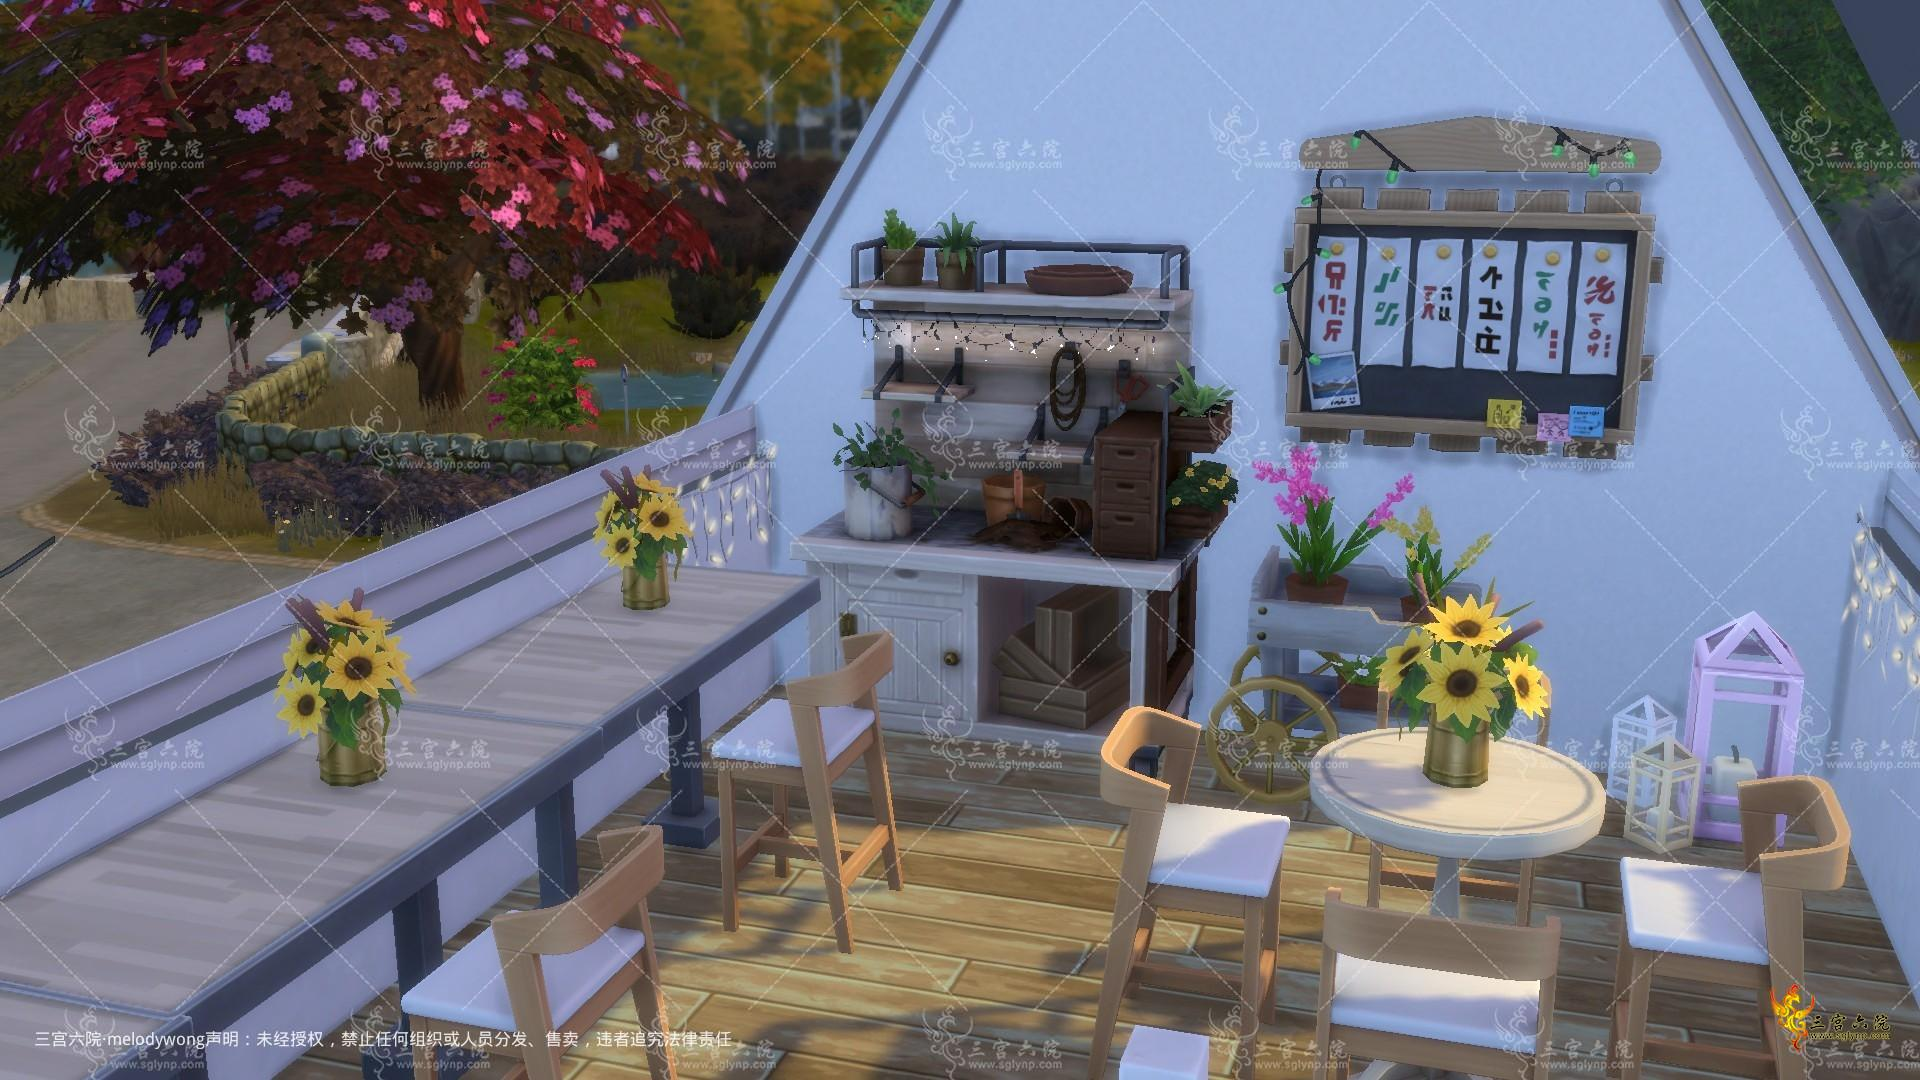 The Sims 4 2021_8_26 下午 03_13_50.png